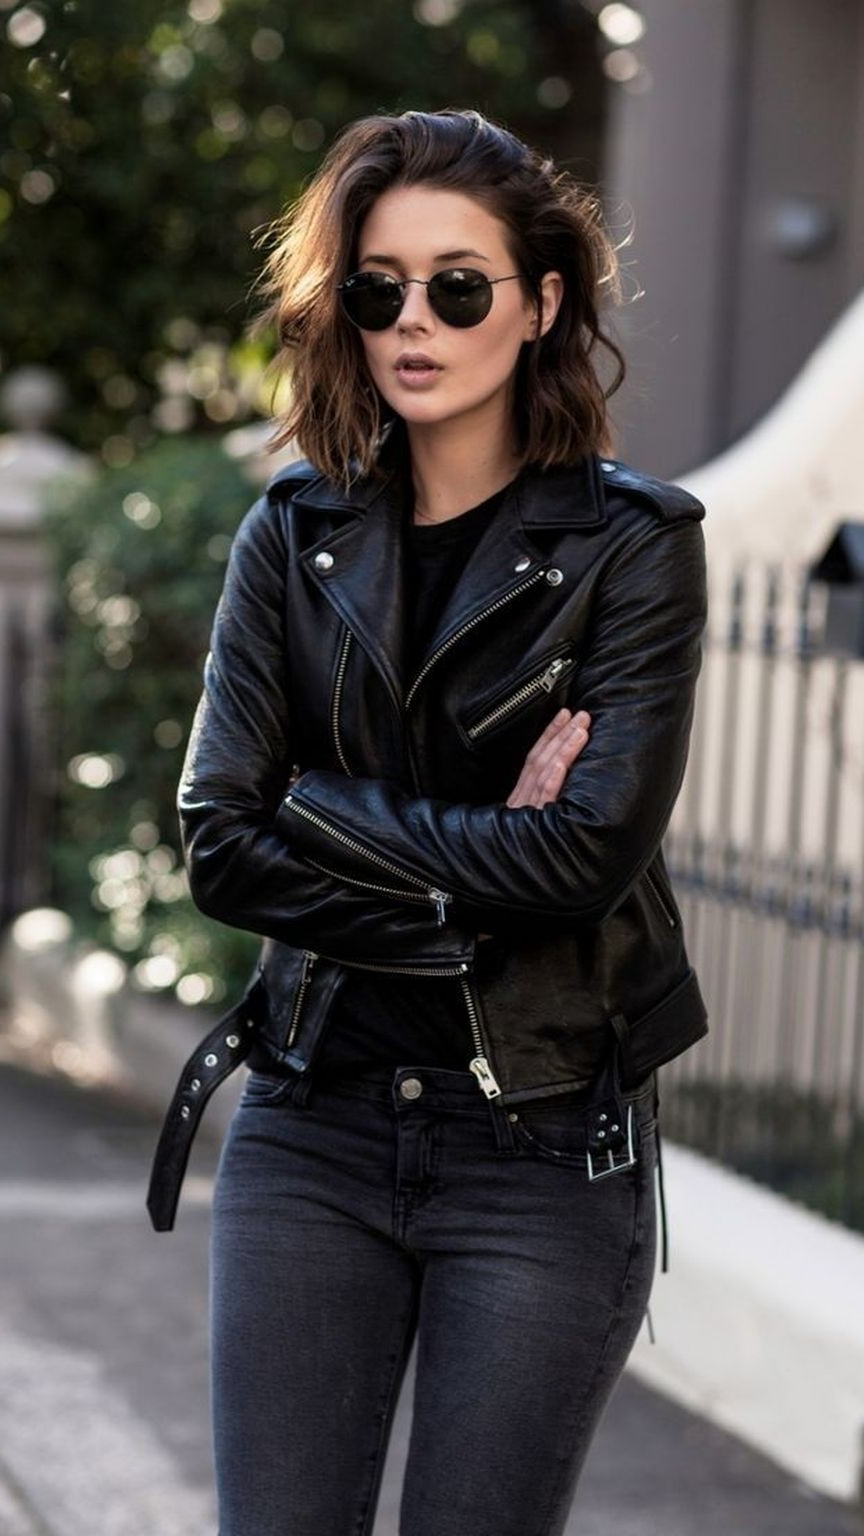 25 Best Leather Jackets for Women 2020 - ClassyStylee